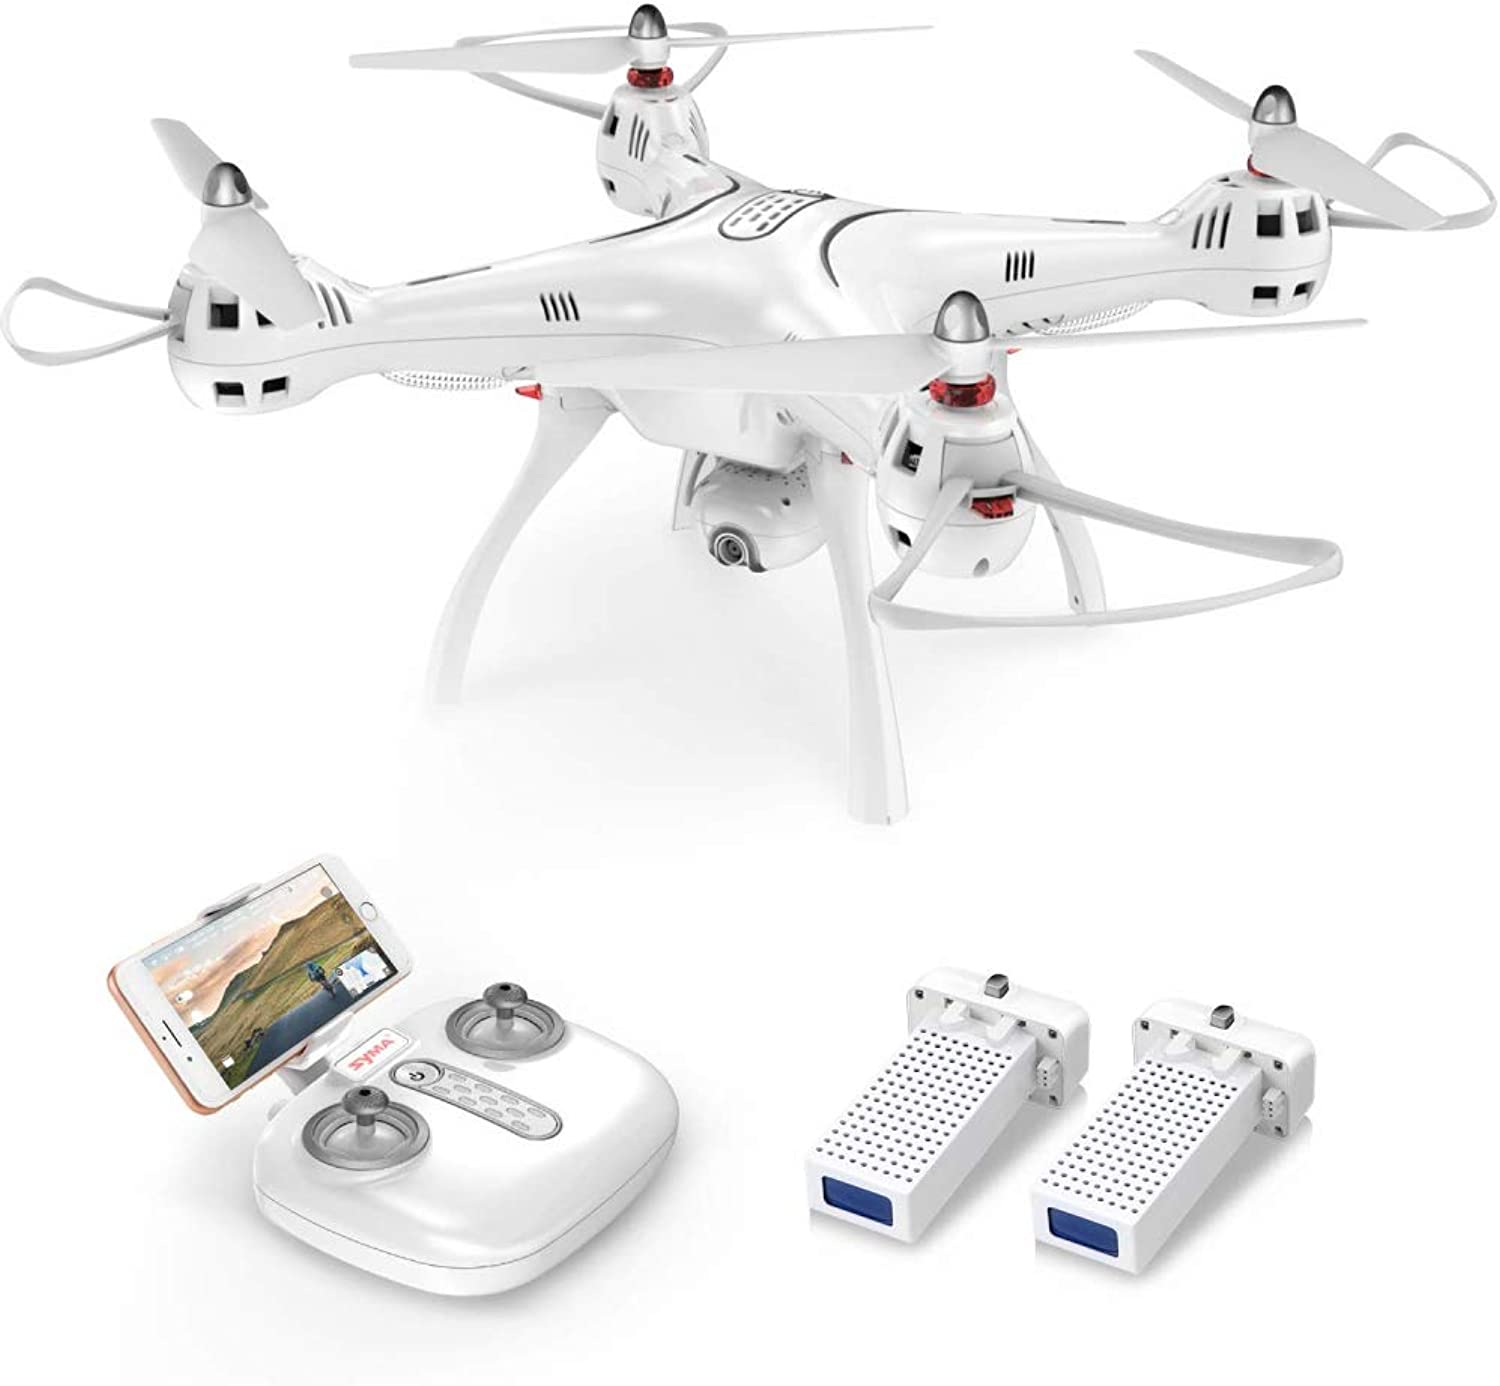 TLgf Quadcopter, RC Drone mit FPV-Adjustable Wide-Angle 720P HD Camera Live Video, Altitude Hold und Headless Mode Funktion